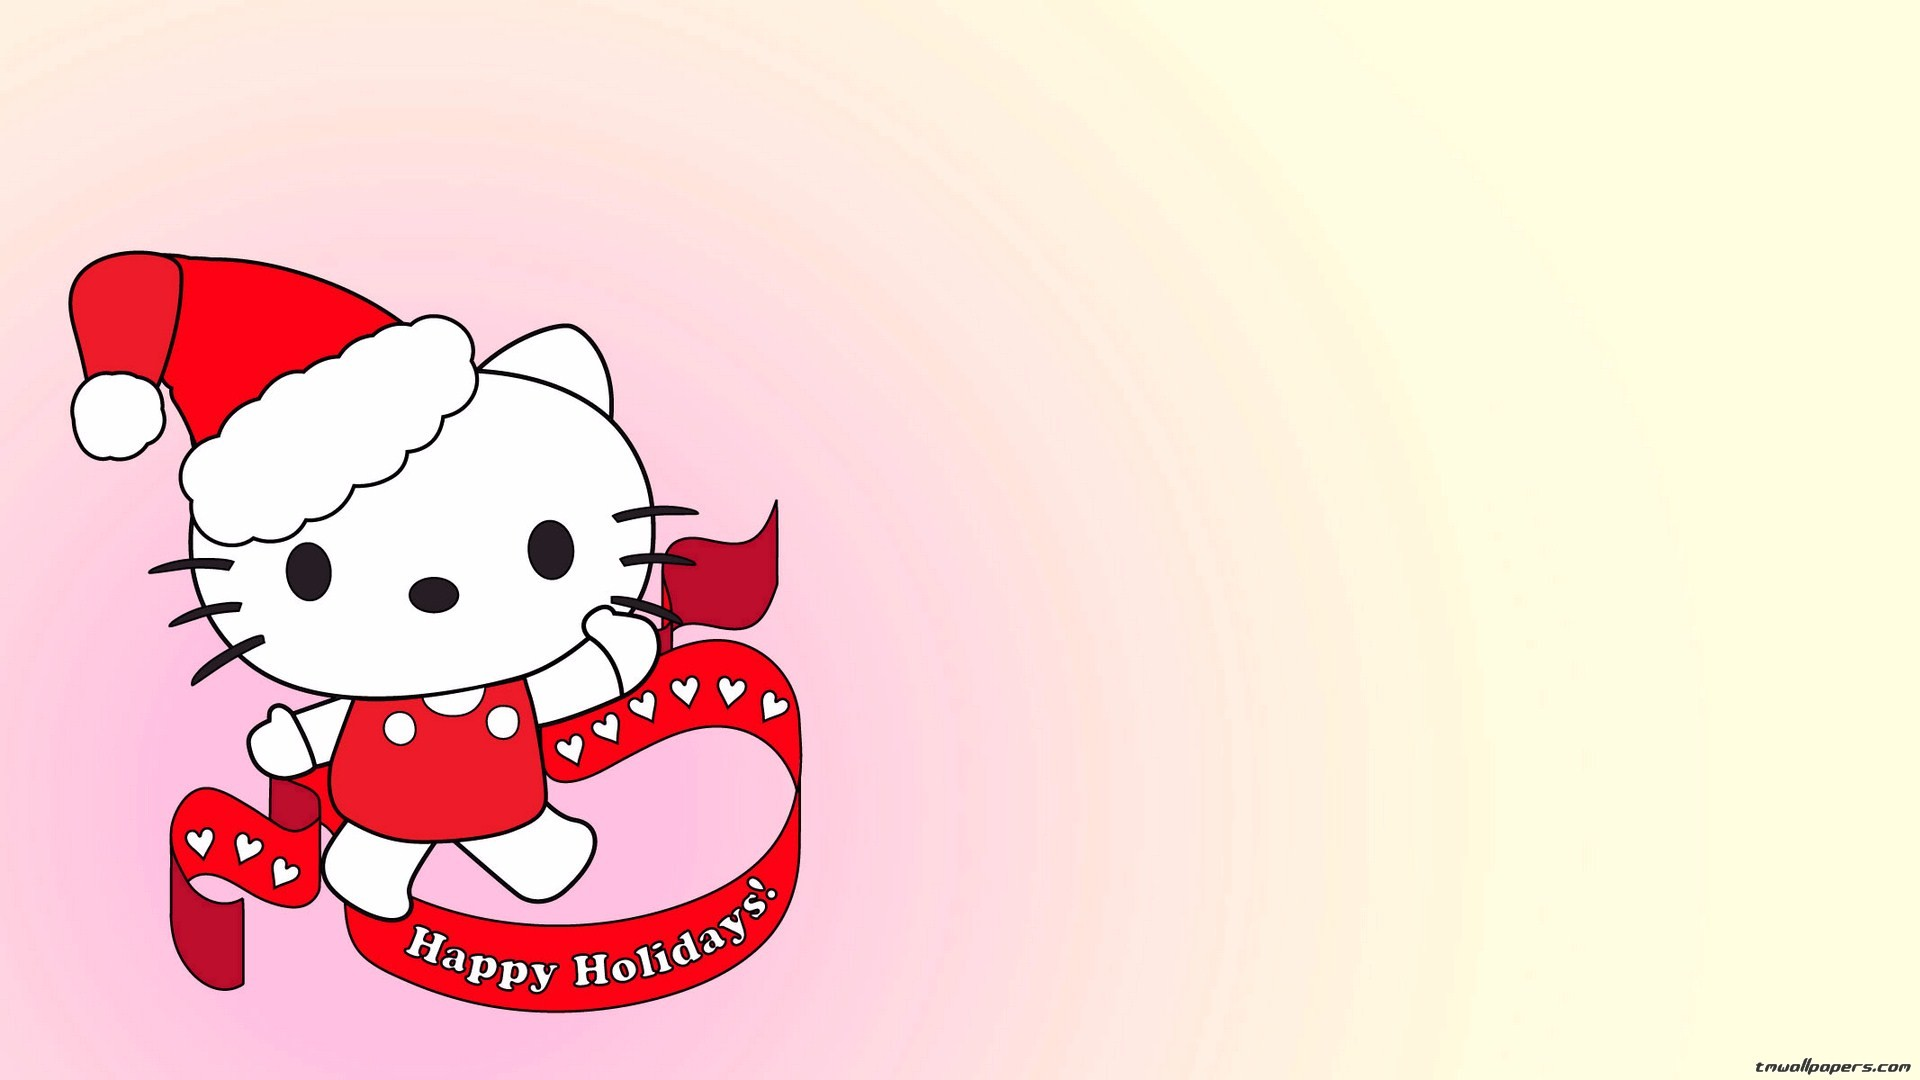 1920x1080 30 Beautiful and Cute Hello Kitty Wallpapers MixHD wallpapers